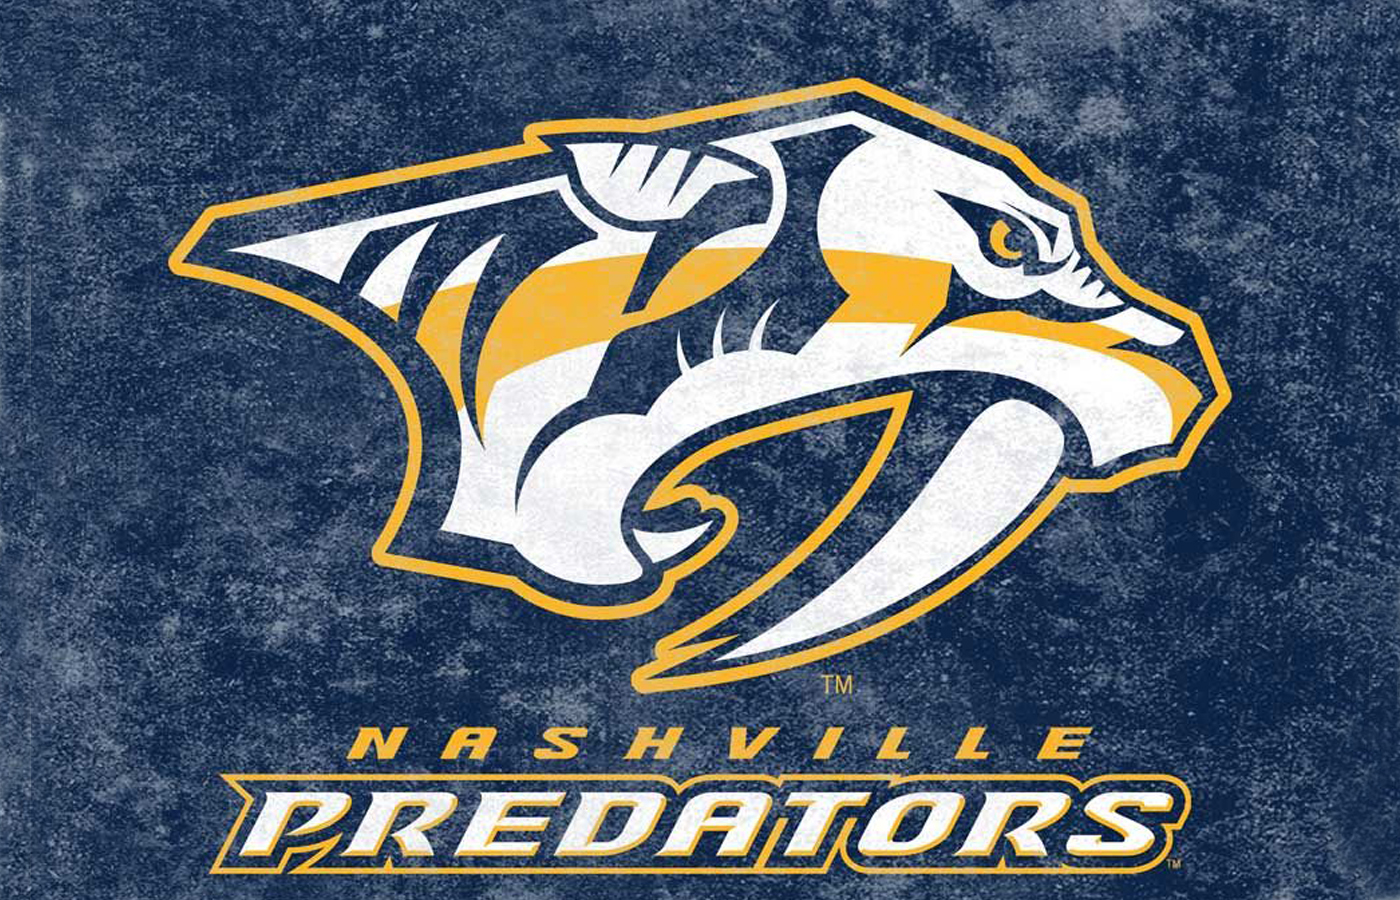 Preds T-Shirt Design Contest